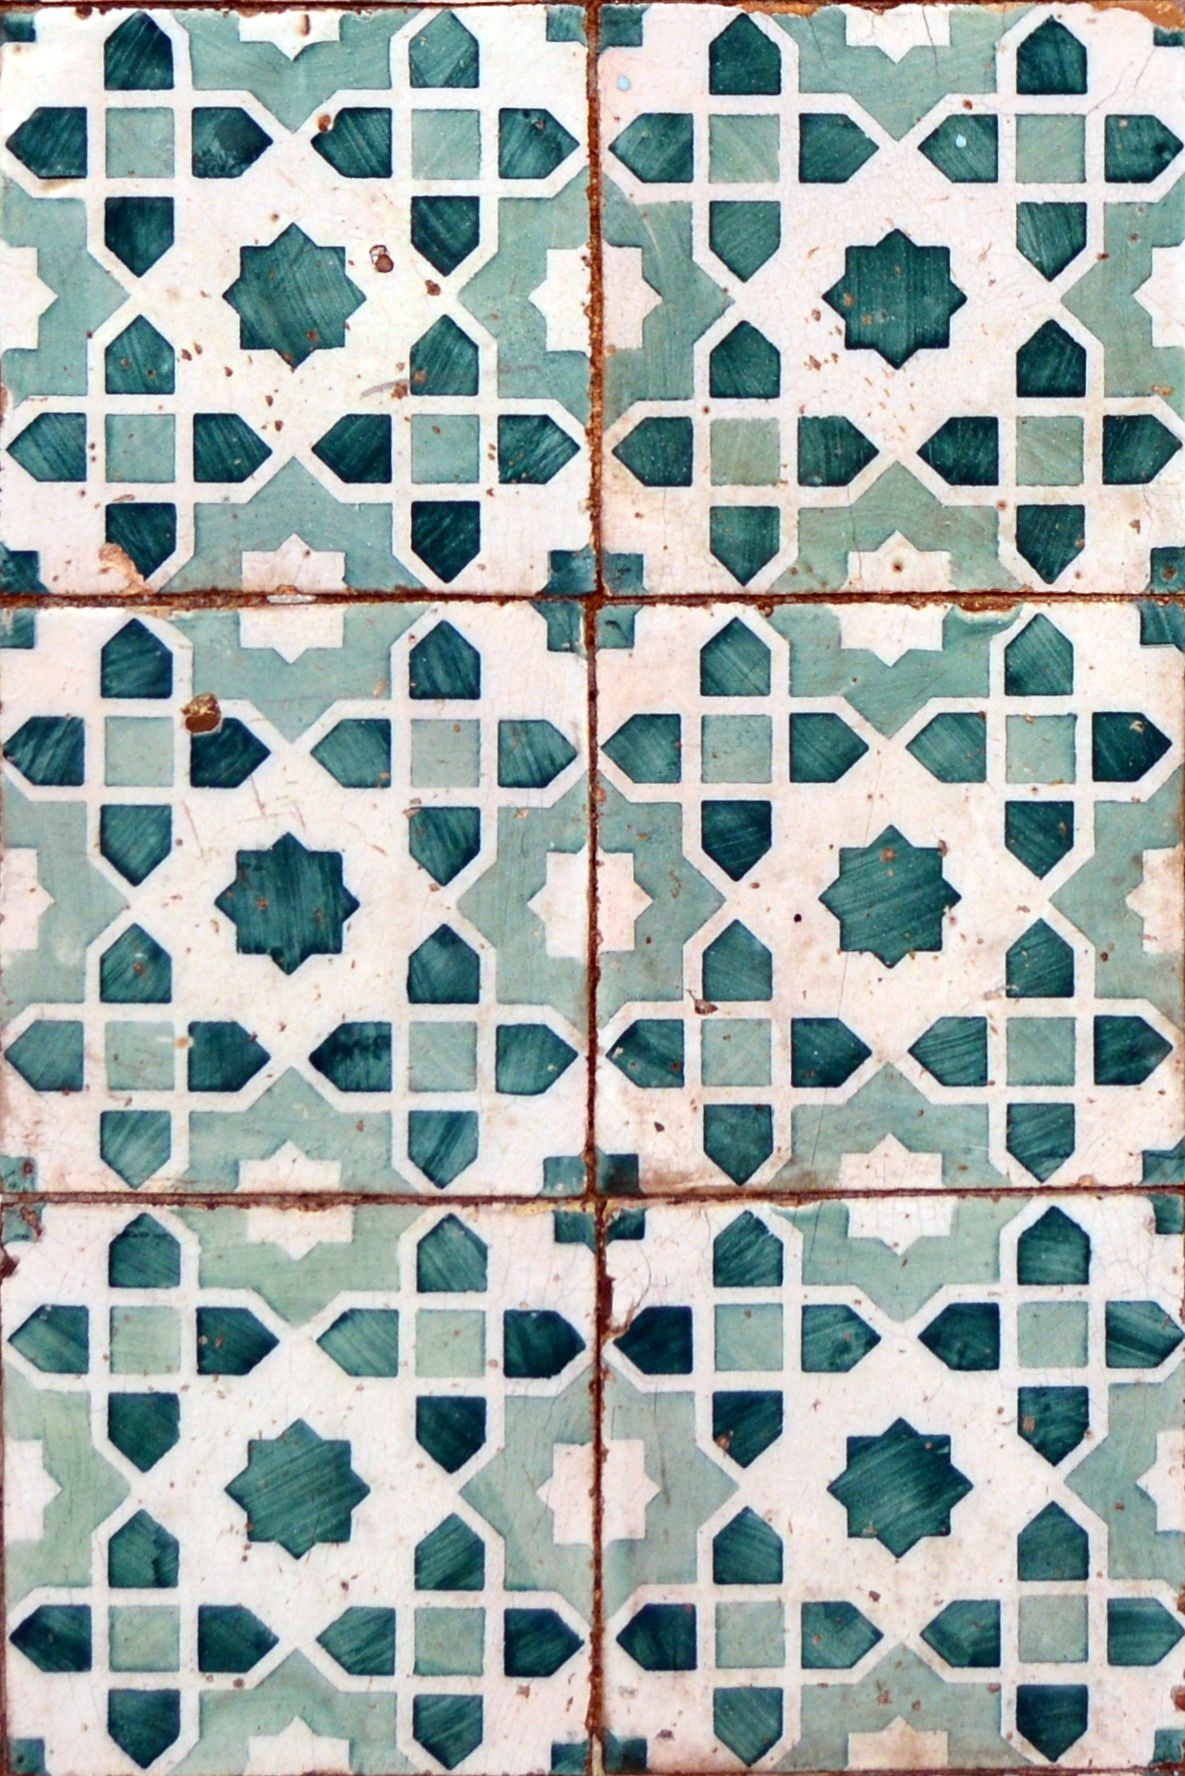 pattern | Other | Pinterest | Patterns, Tile patterns and Inspiration